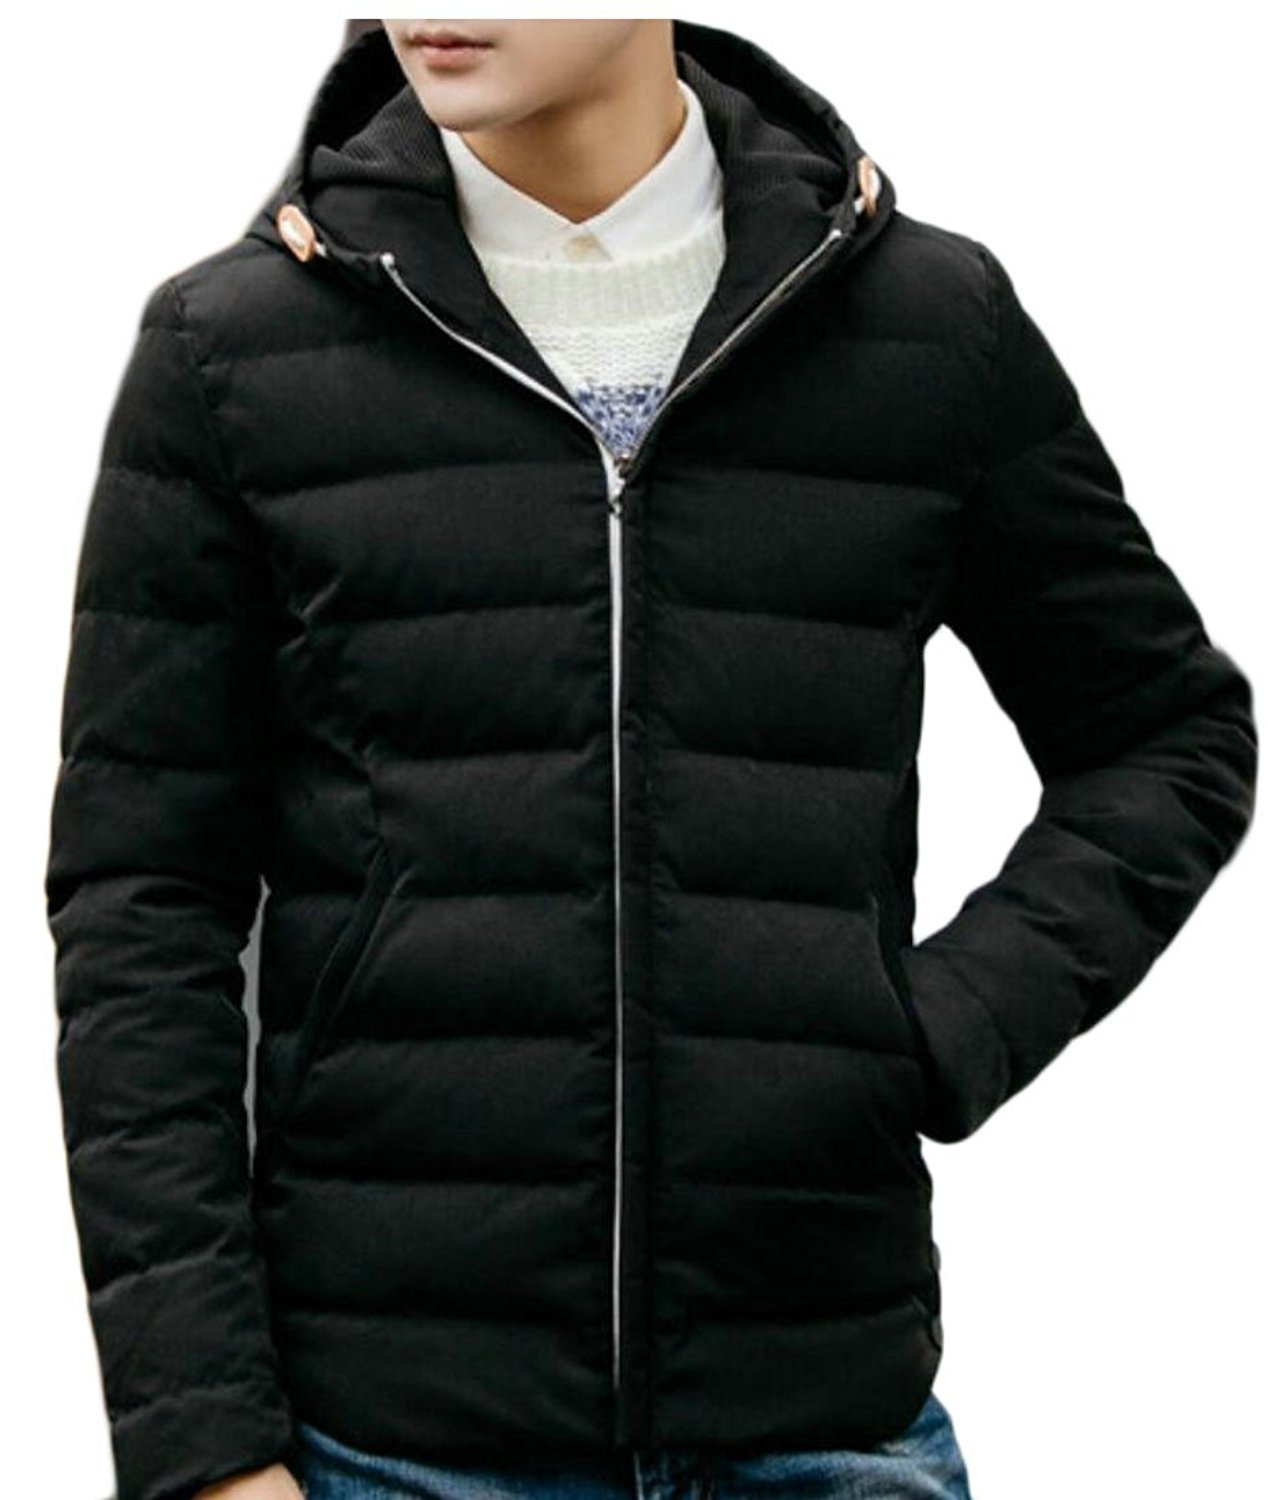 WSPLYSPJY Mens Winter Lightweight Packable Outwear Hooded Down Jacket Puffer Coat